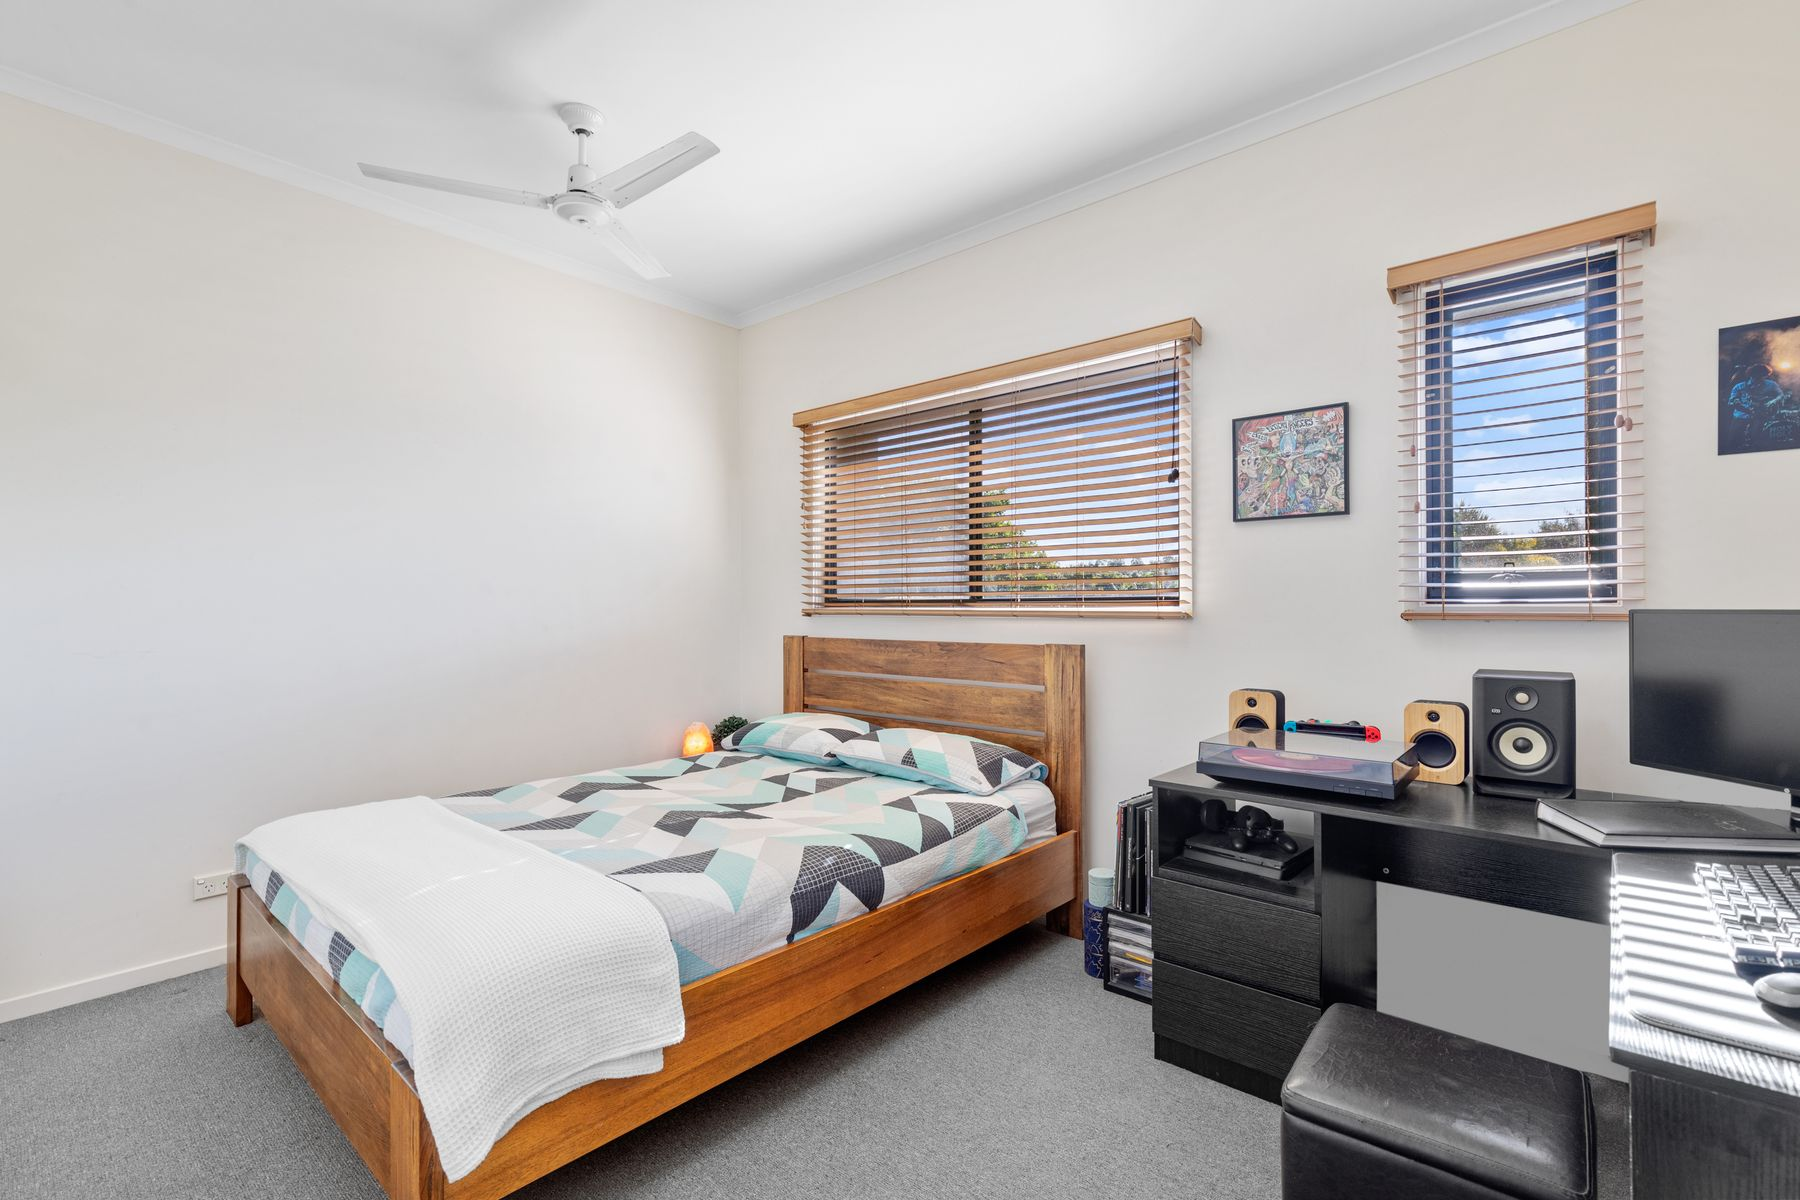 19/1 Lakehead Drive, Sippy Downs, QLD 4556